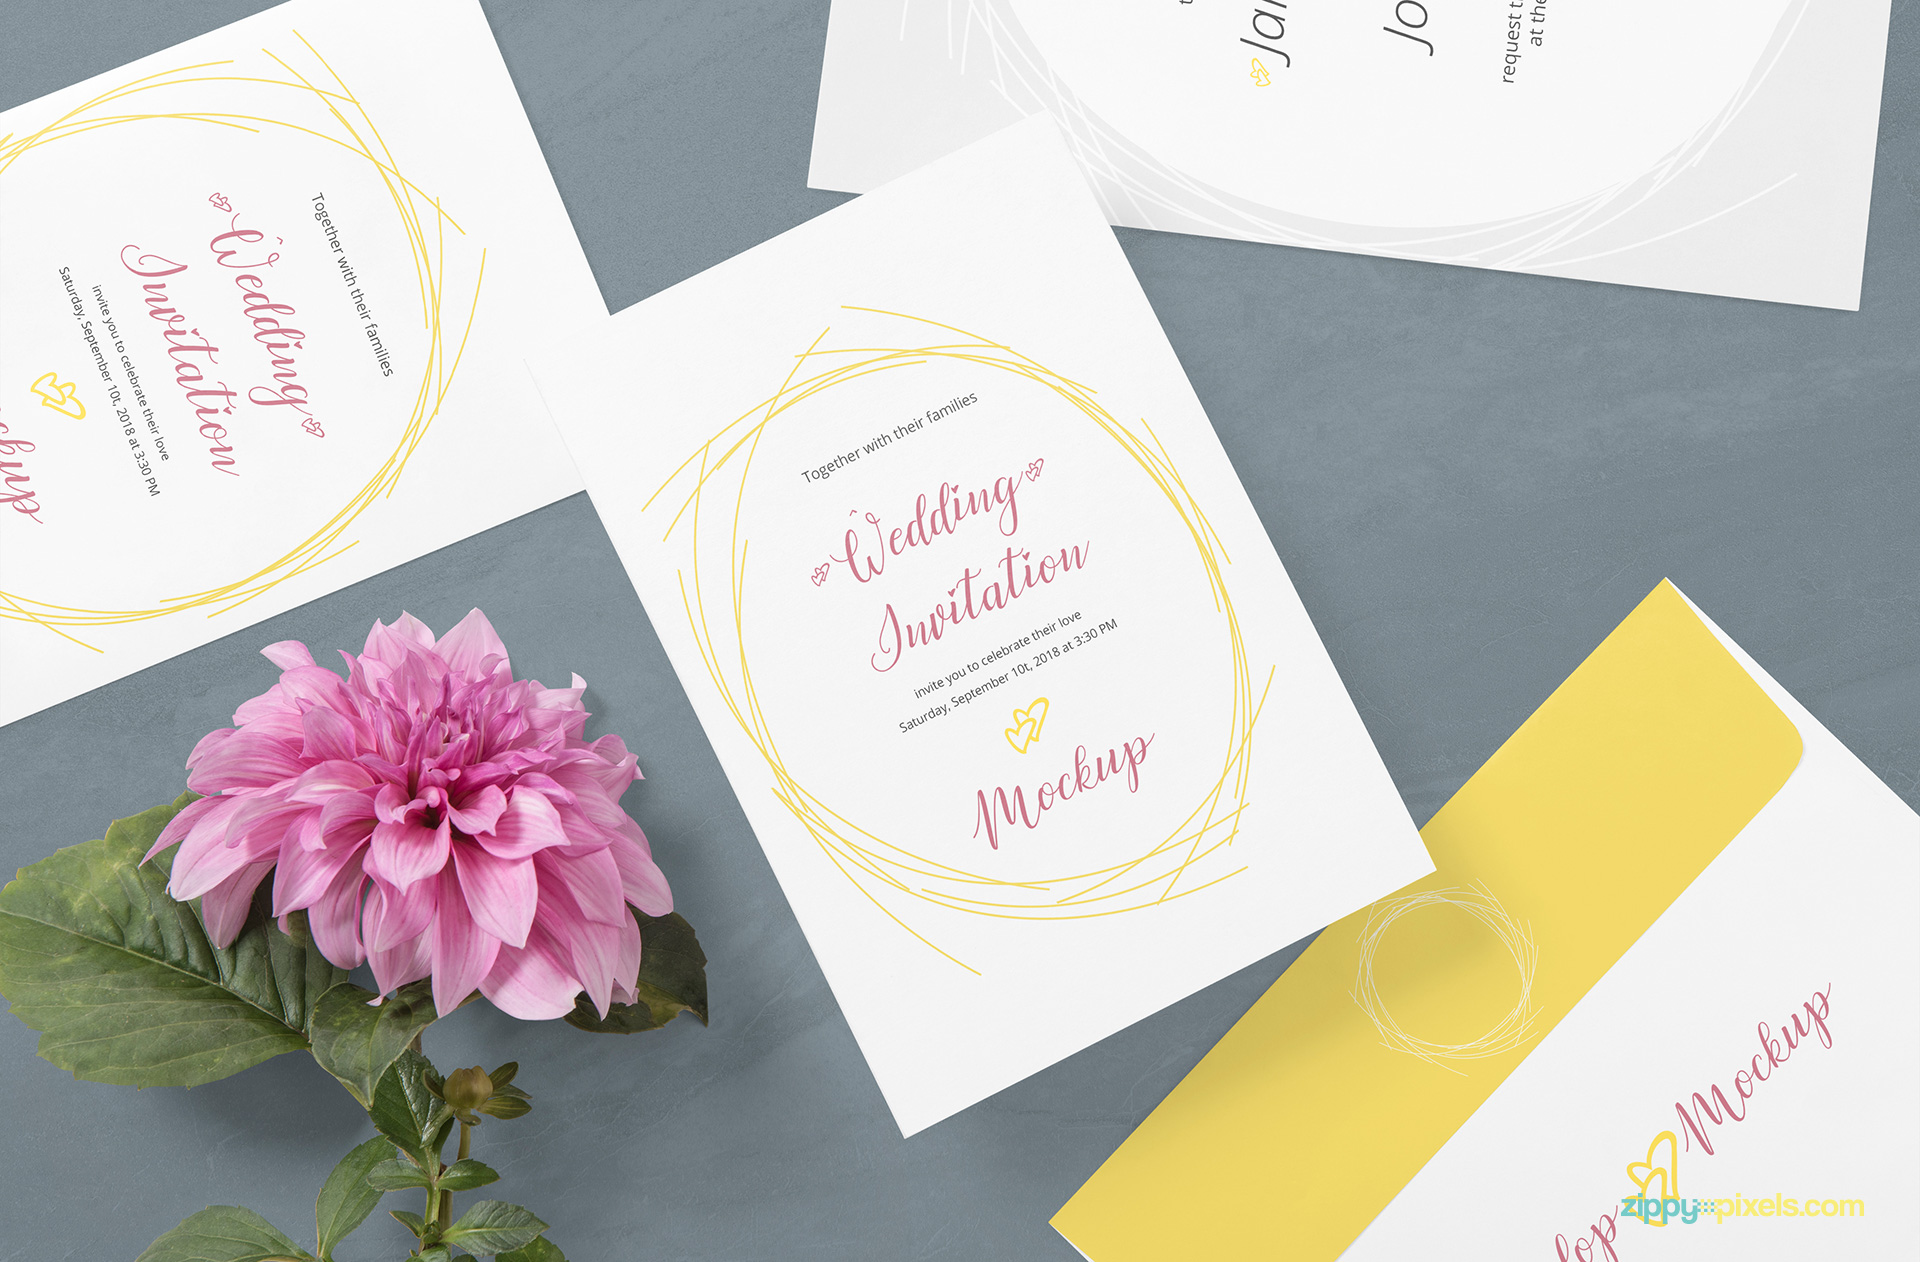 Wedding invitation mockup including 3 cards and one envelope.